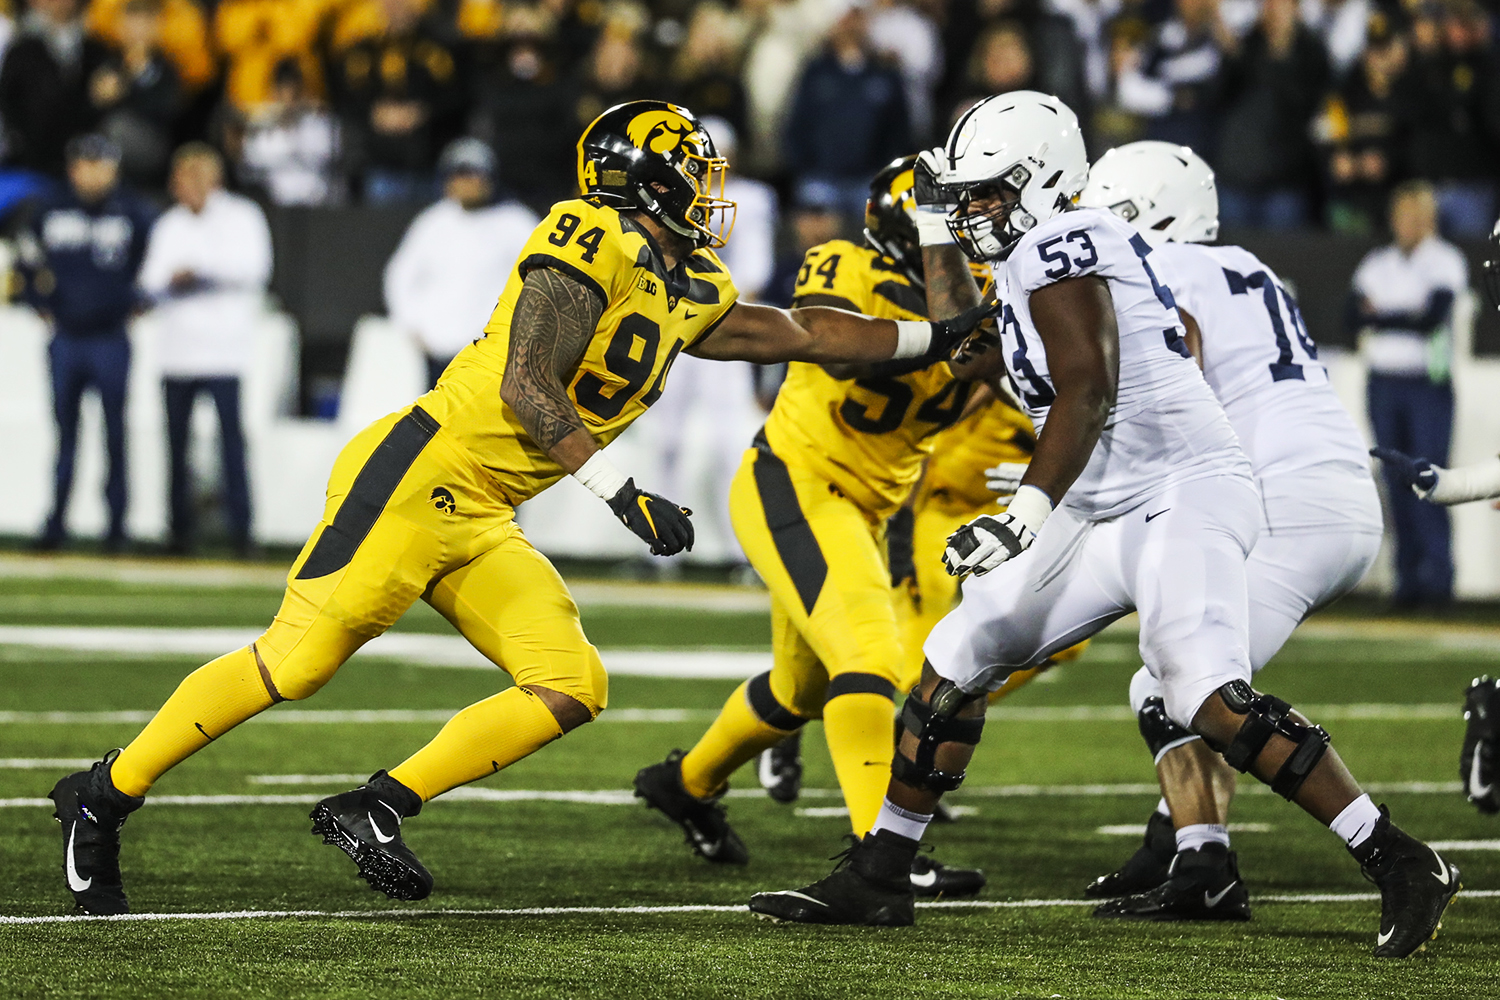 Iowa defensive end A.J. Epenesa defends against Penn State offensive lineman Rasheed Walker during the Iowa football game against Penn State in Iowa City on Saturday, Oct. 12, 2019. The Nittany Lions defeated the Hawkeyes 17-12. (Katina Zentz/The Daily Iowan)